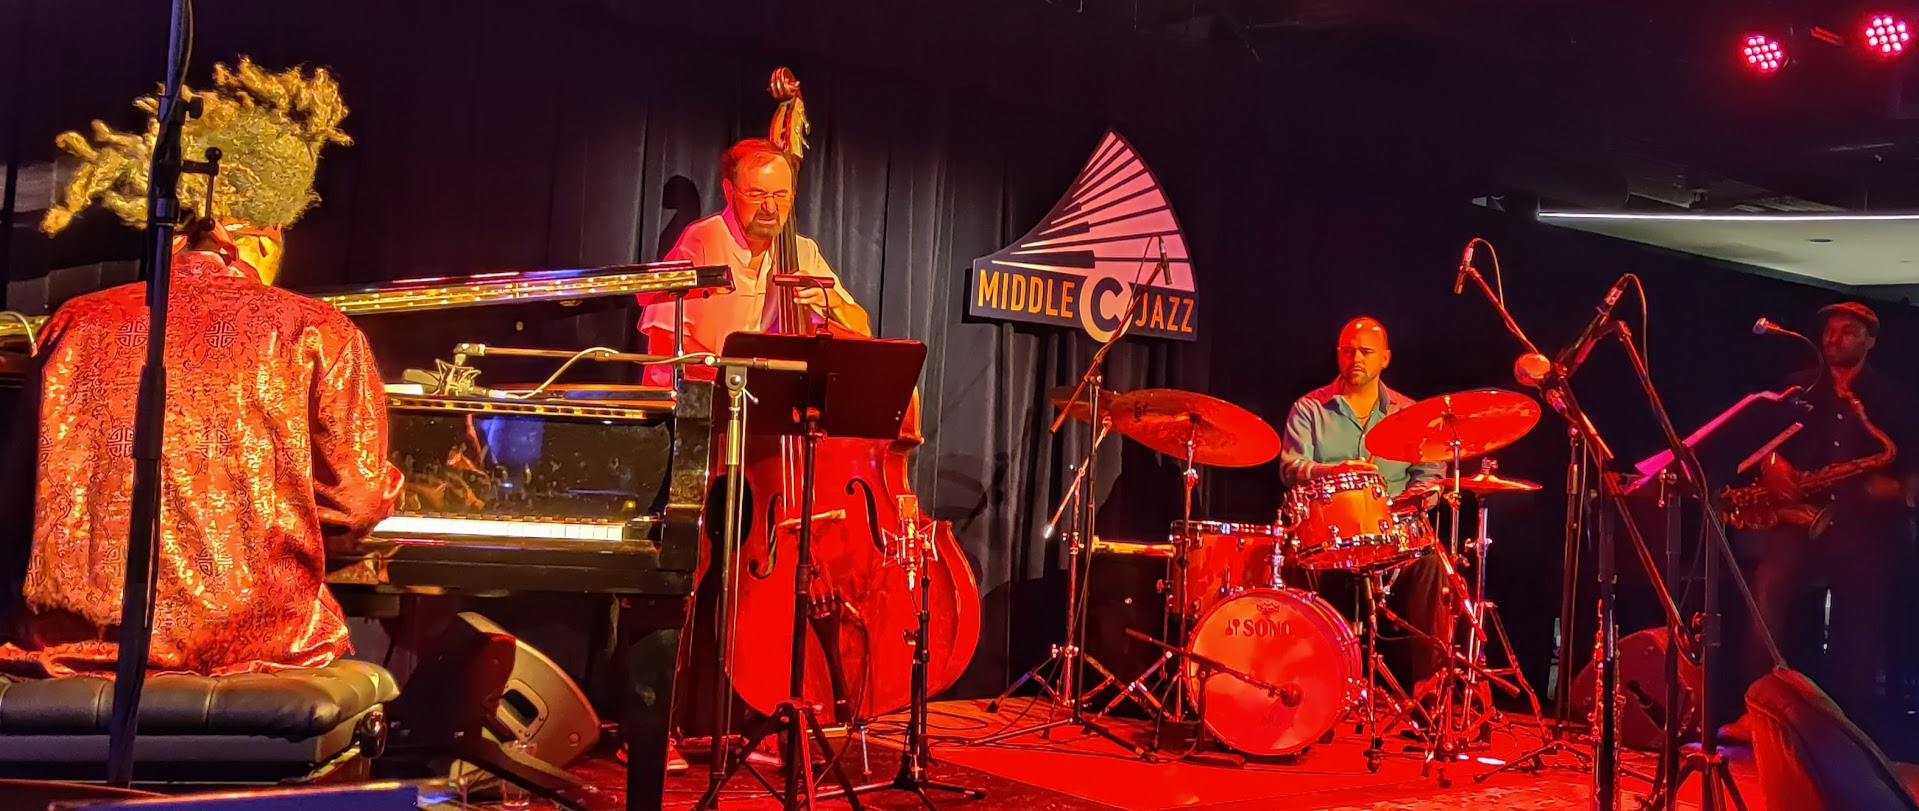 Joe Barna & Sketches of Influence at Middle C Jazz